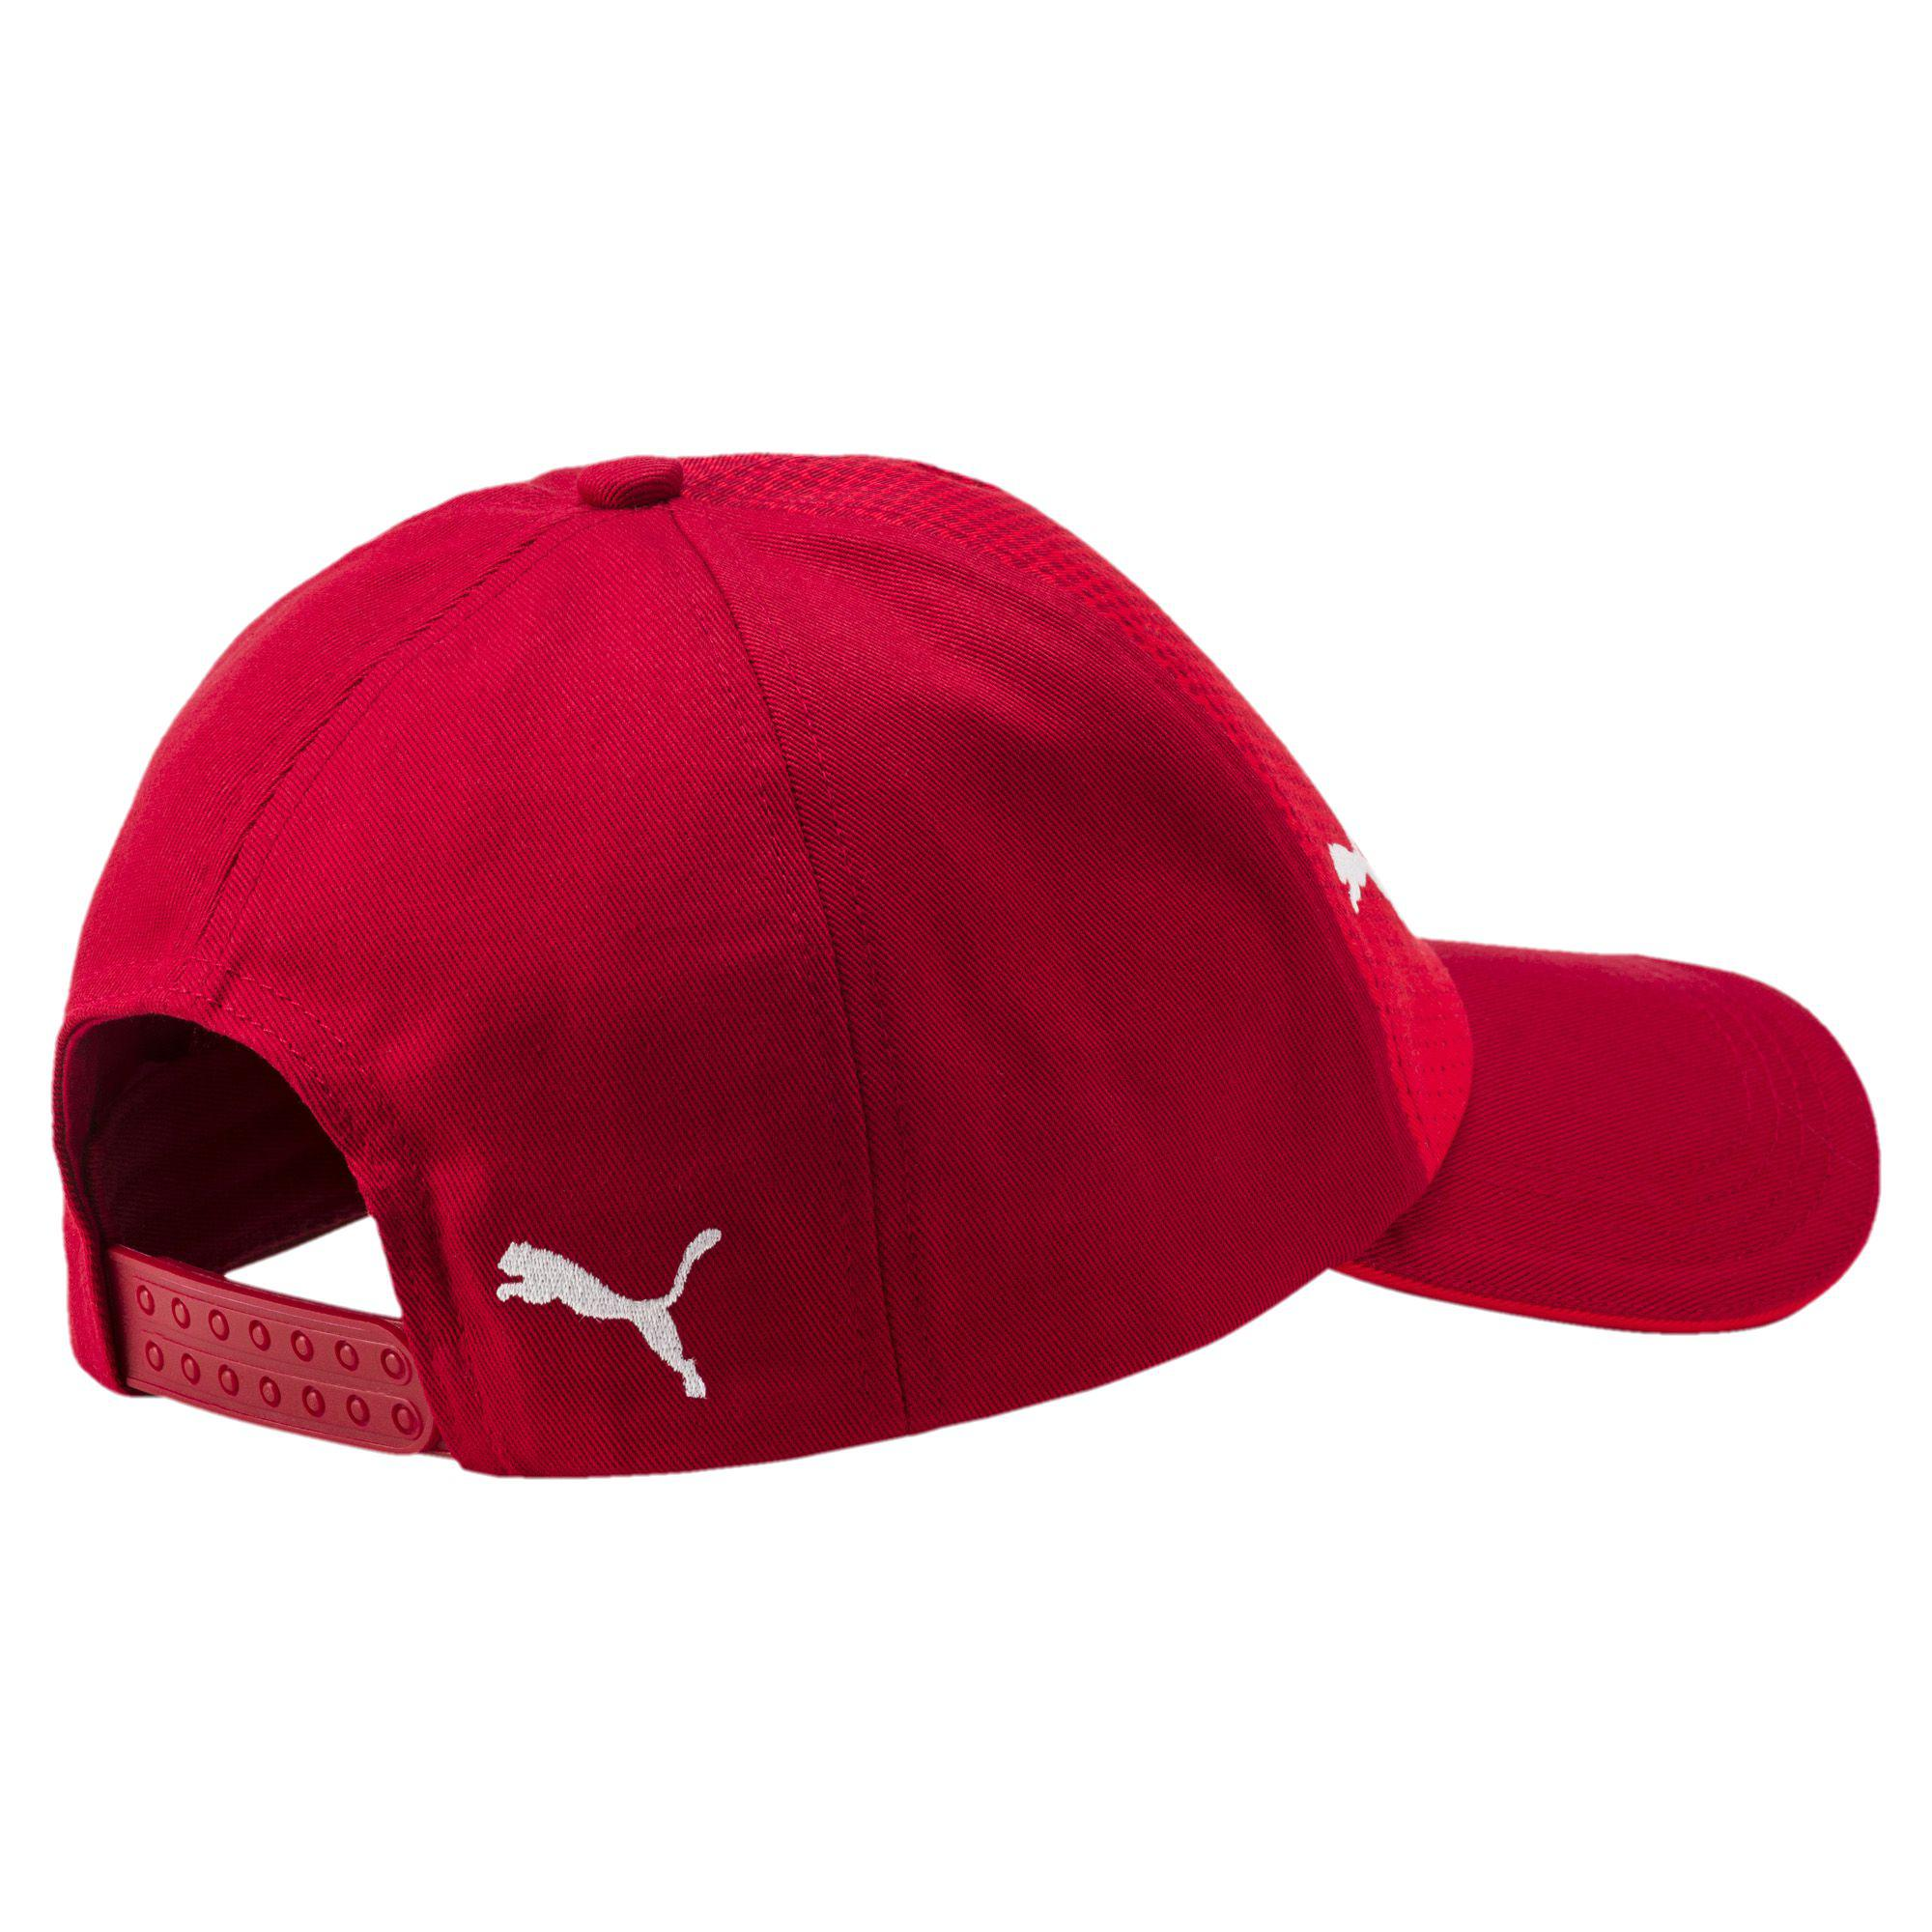 29f4ccce062 Lyst - PUMA Arsenal Hat in Red for Men